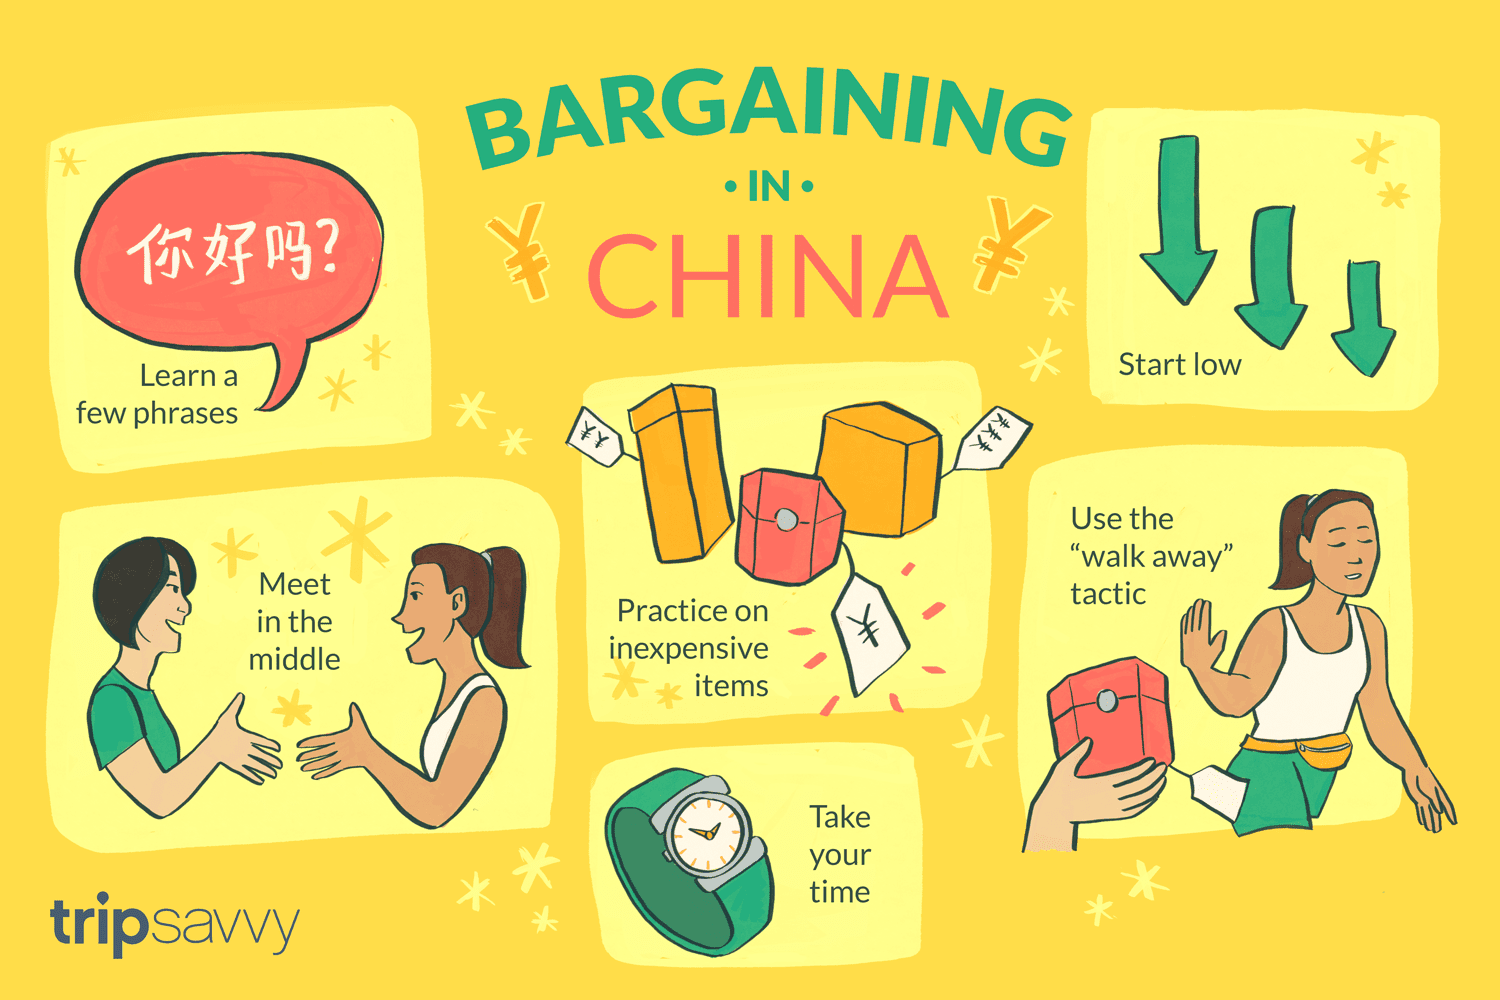 Illustration showing how to bargain in China